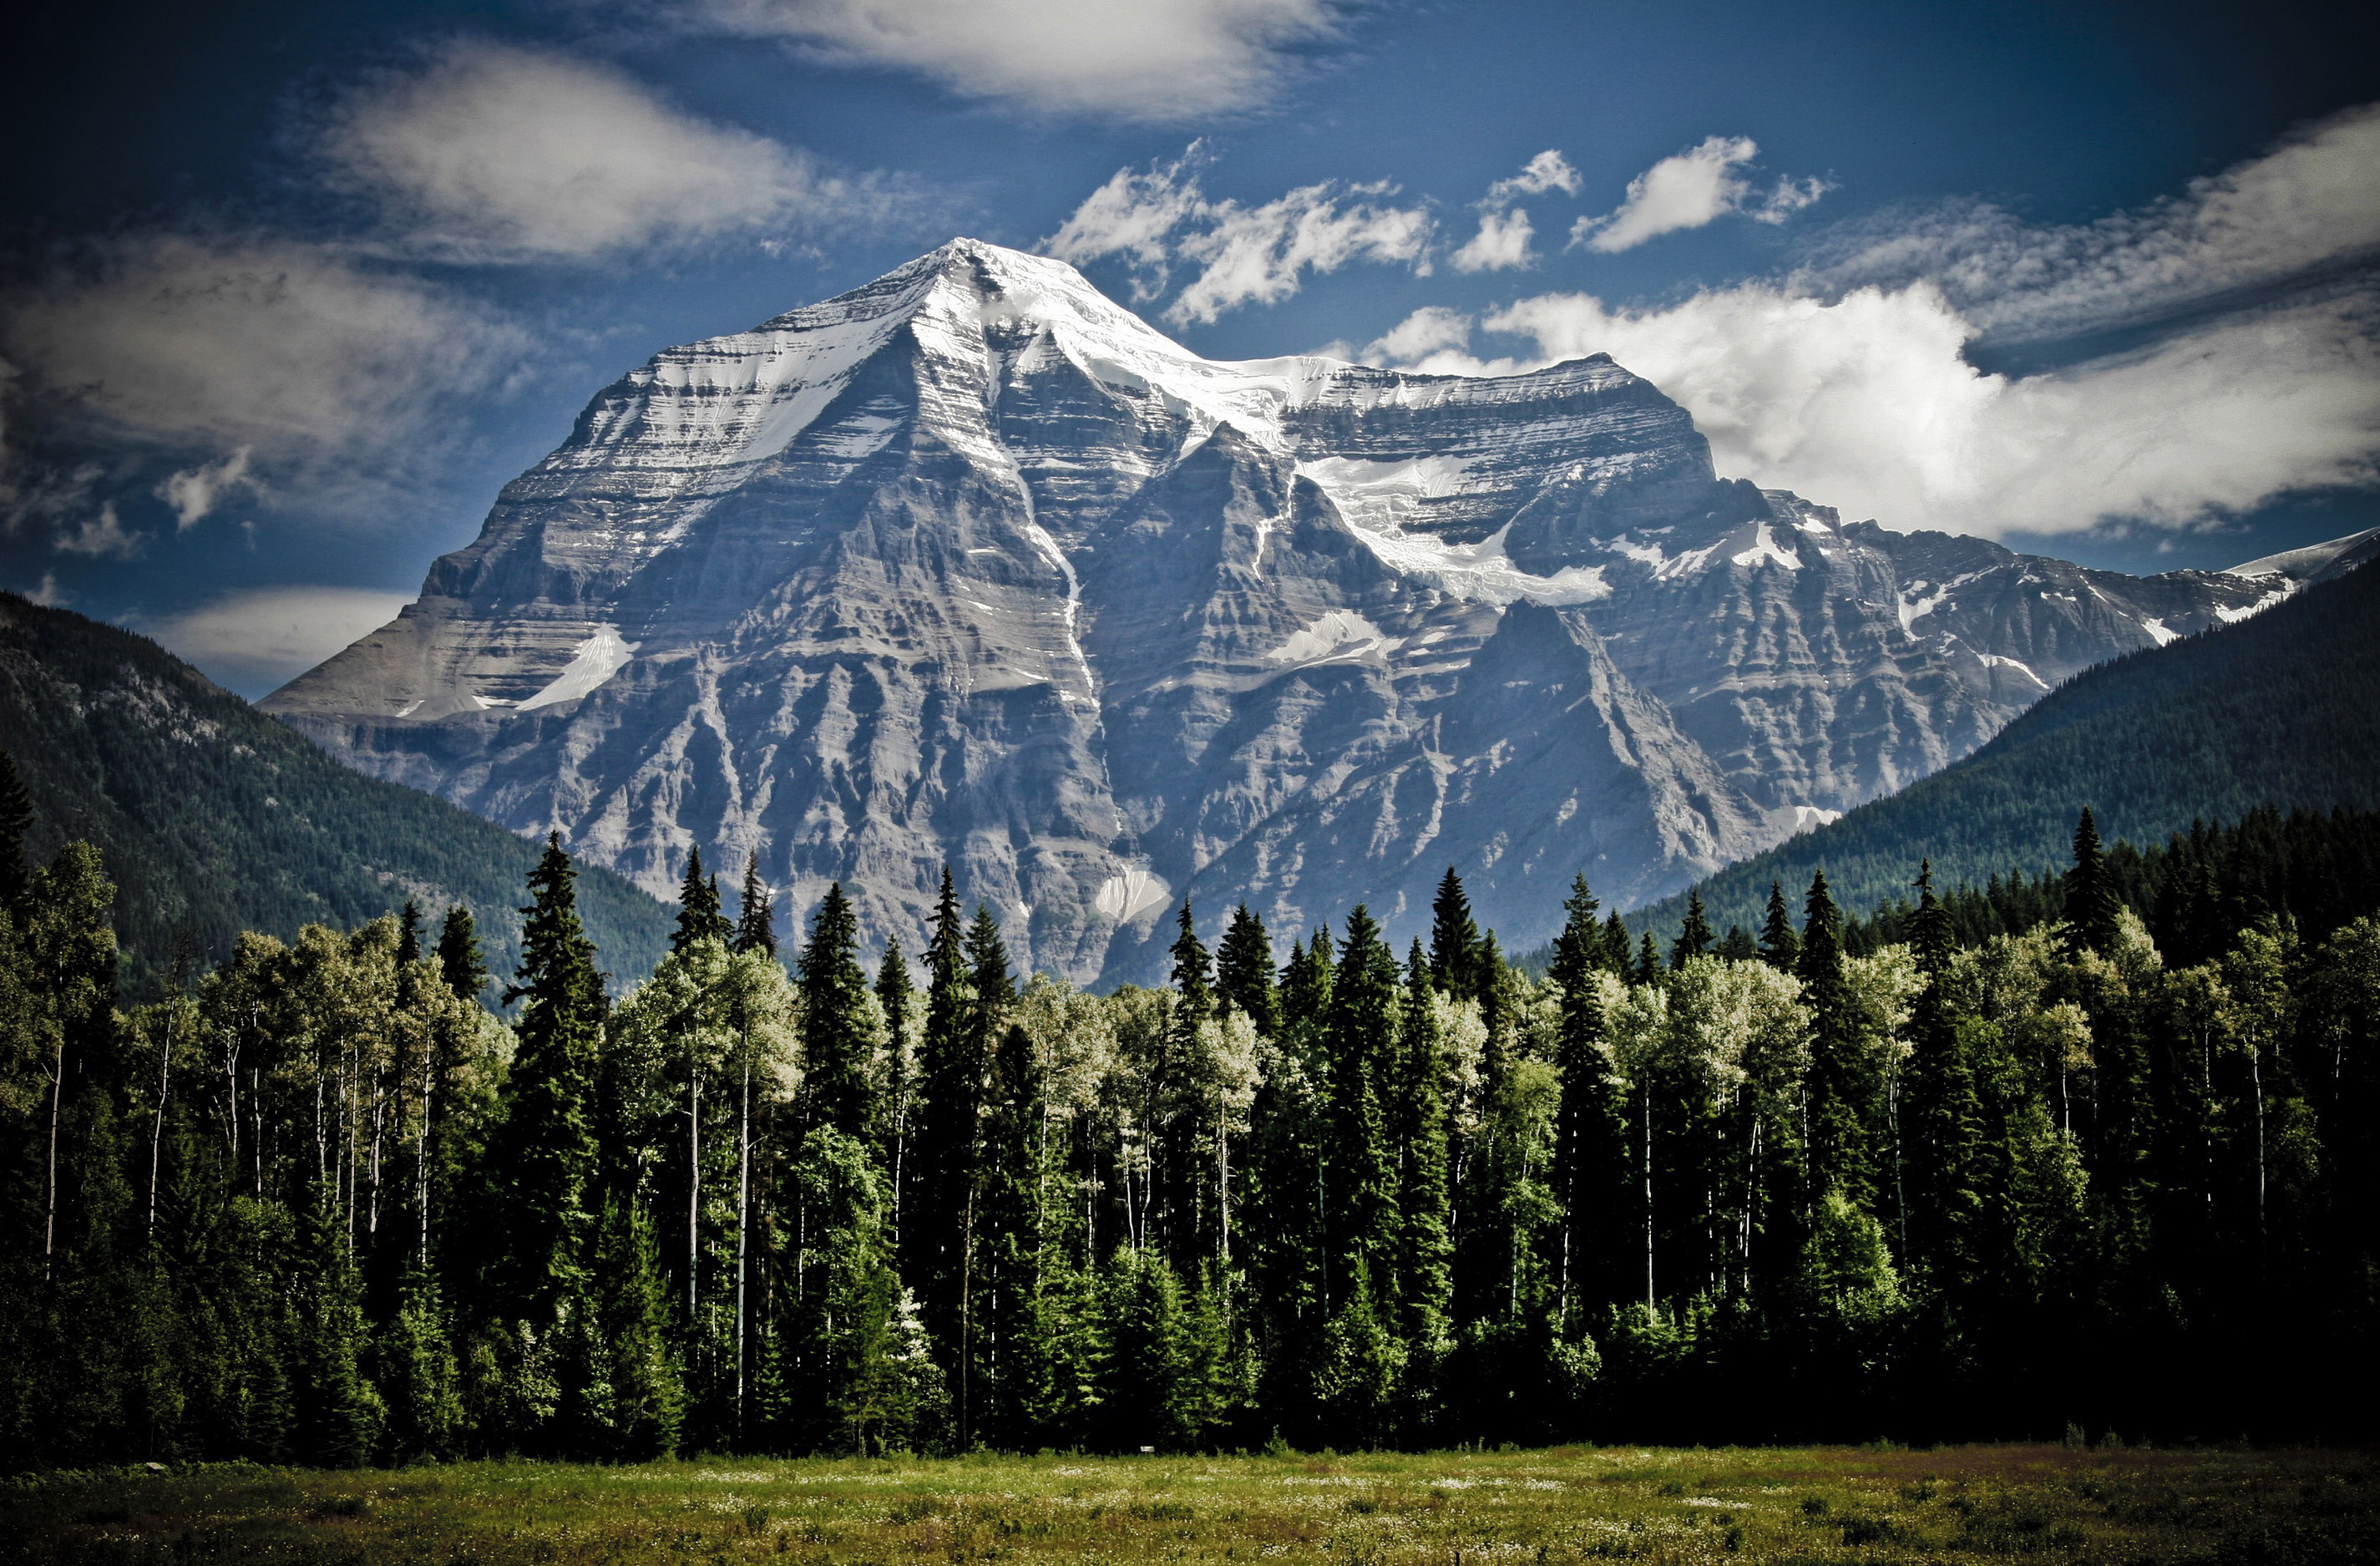 Landscape with mountains with trees in British Columbia, Canada ...